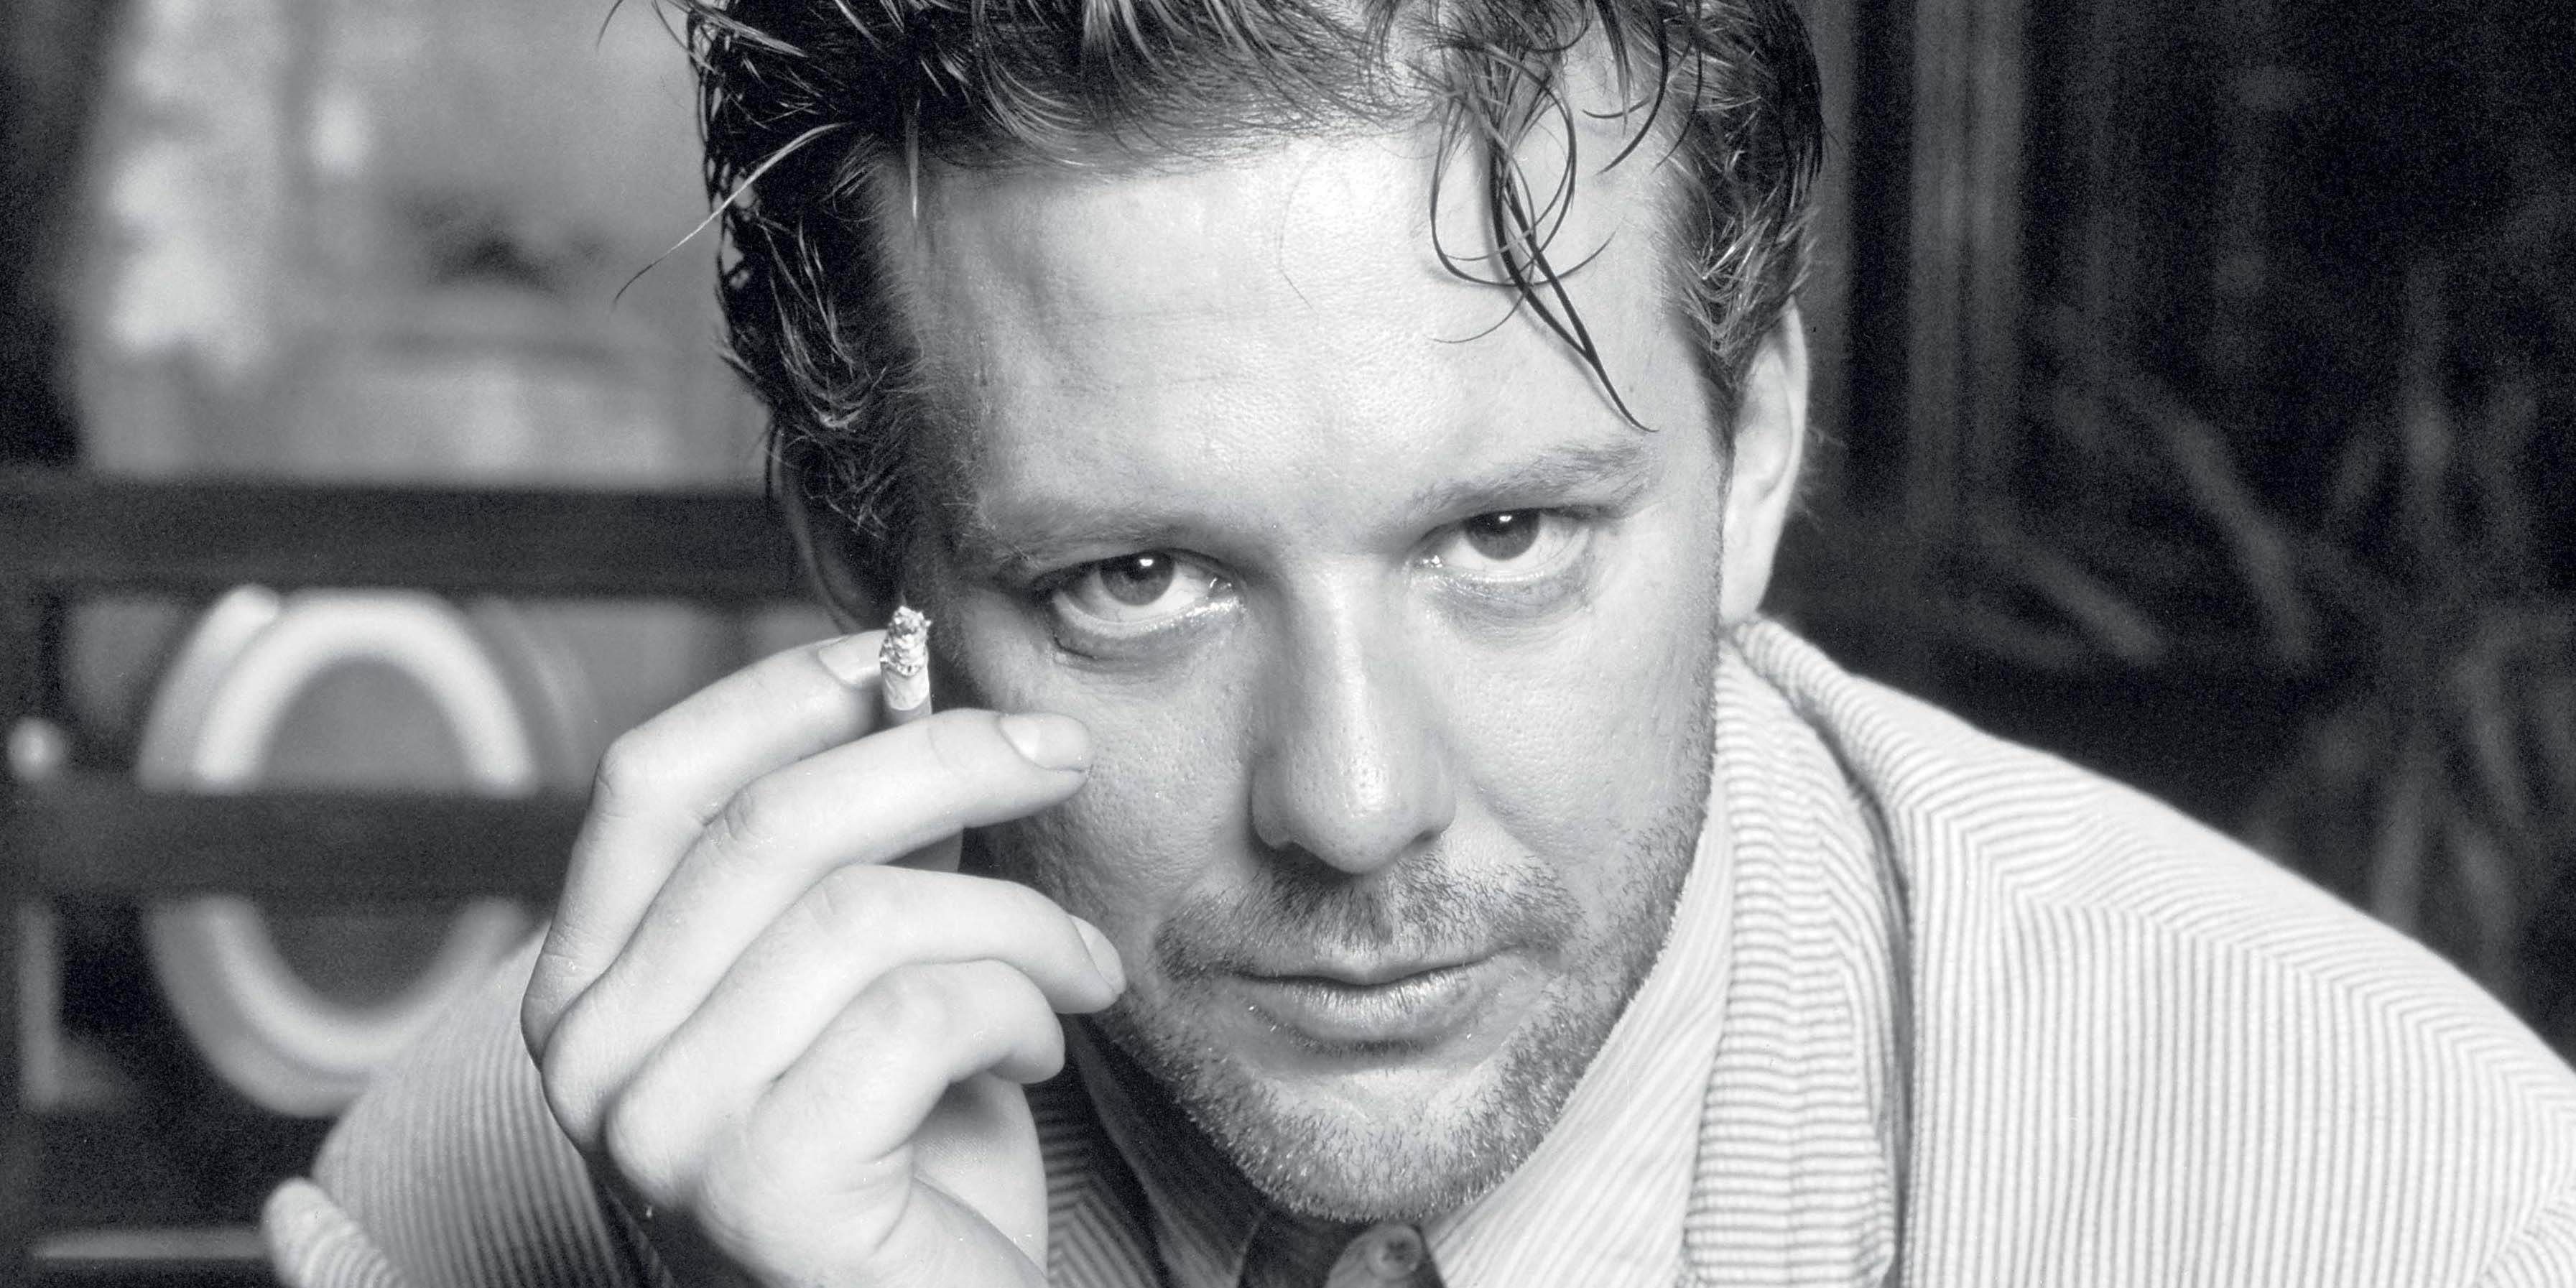 Mickey Rourke, star of Angel Heart,  wearing a striped shirt and jacket and smoking a cigarette